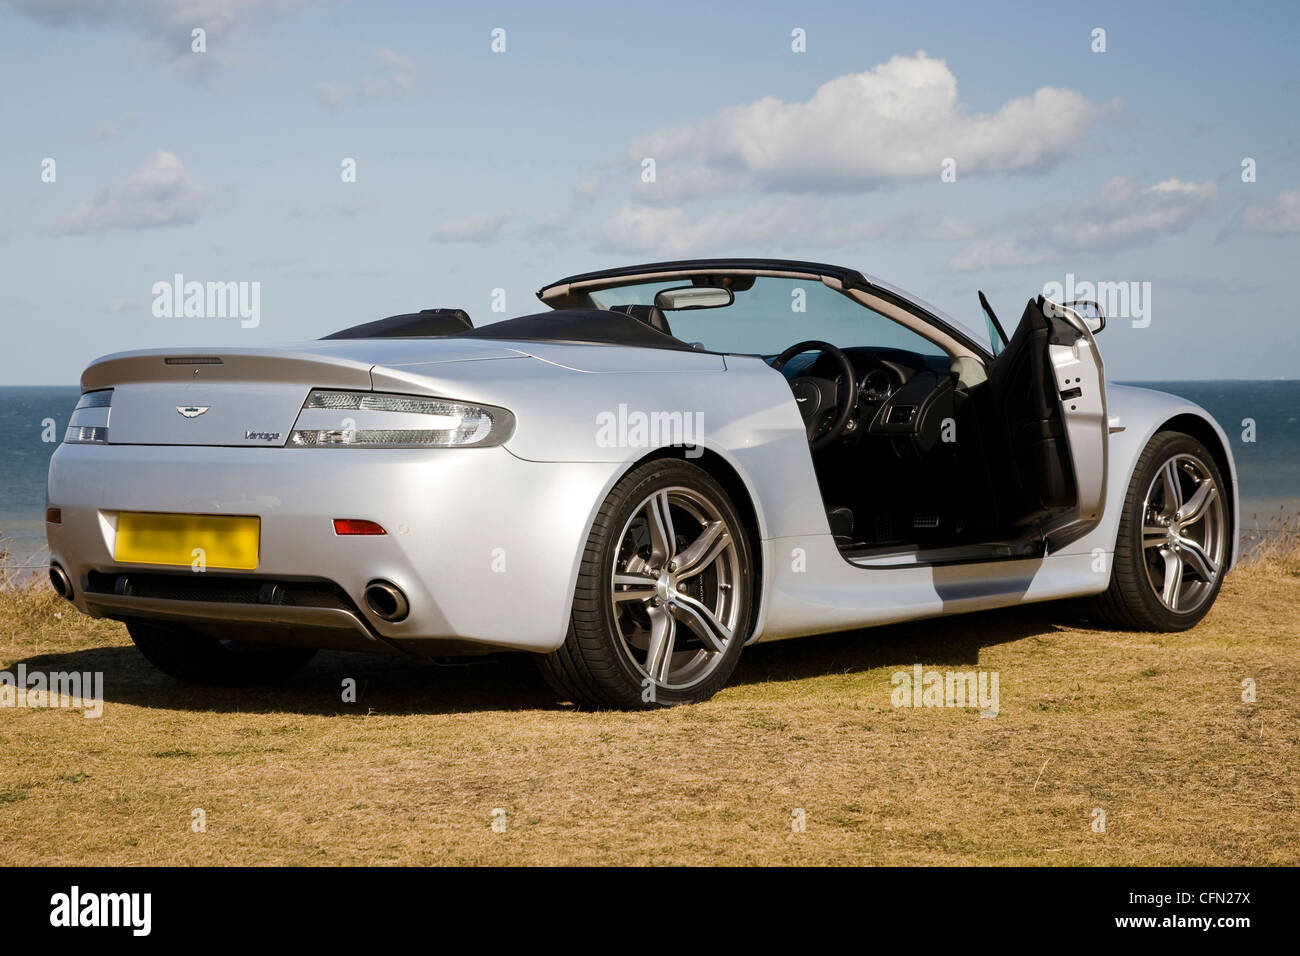 Aston Martin V8 Vantage On Location High Resolution Stock Photography And Images Alamy